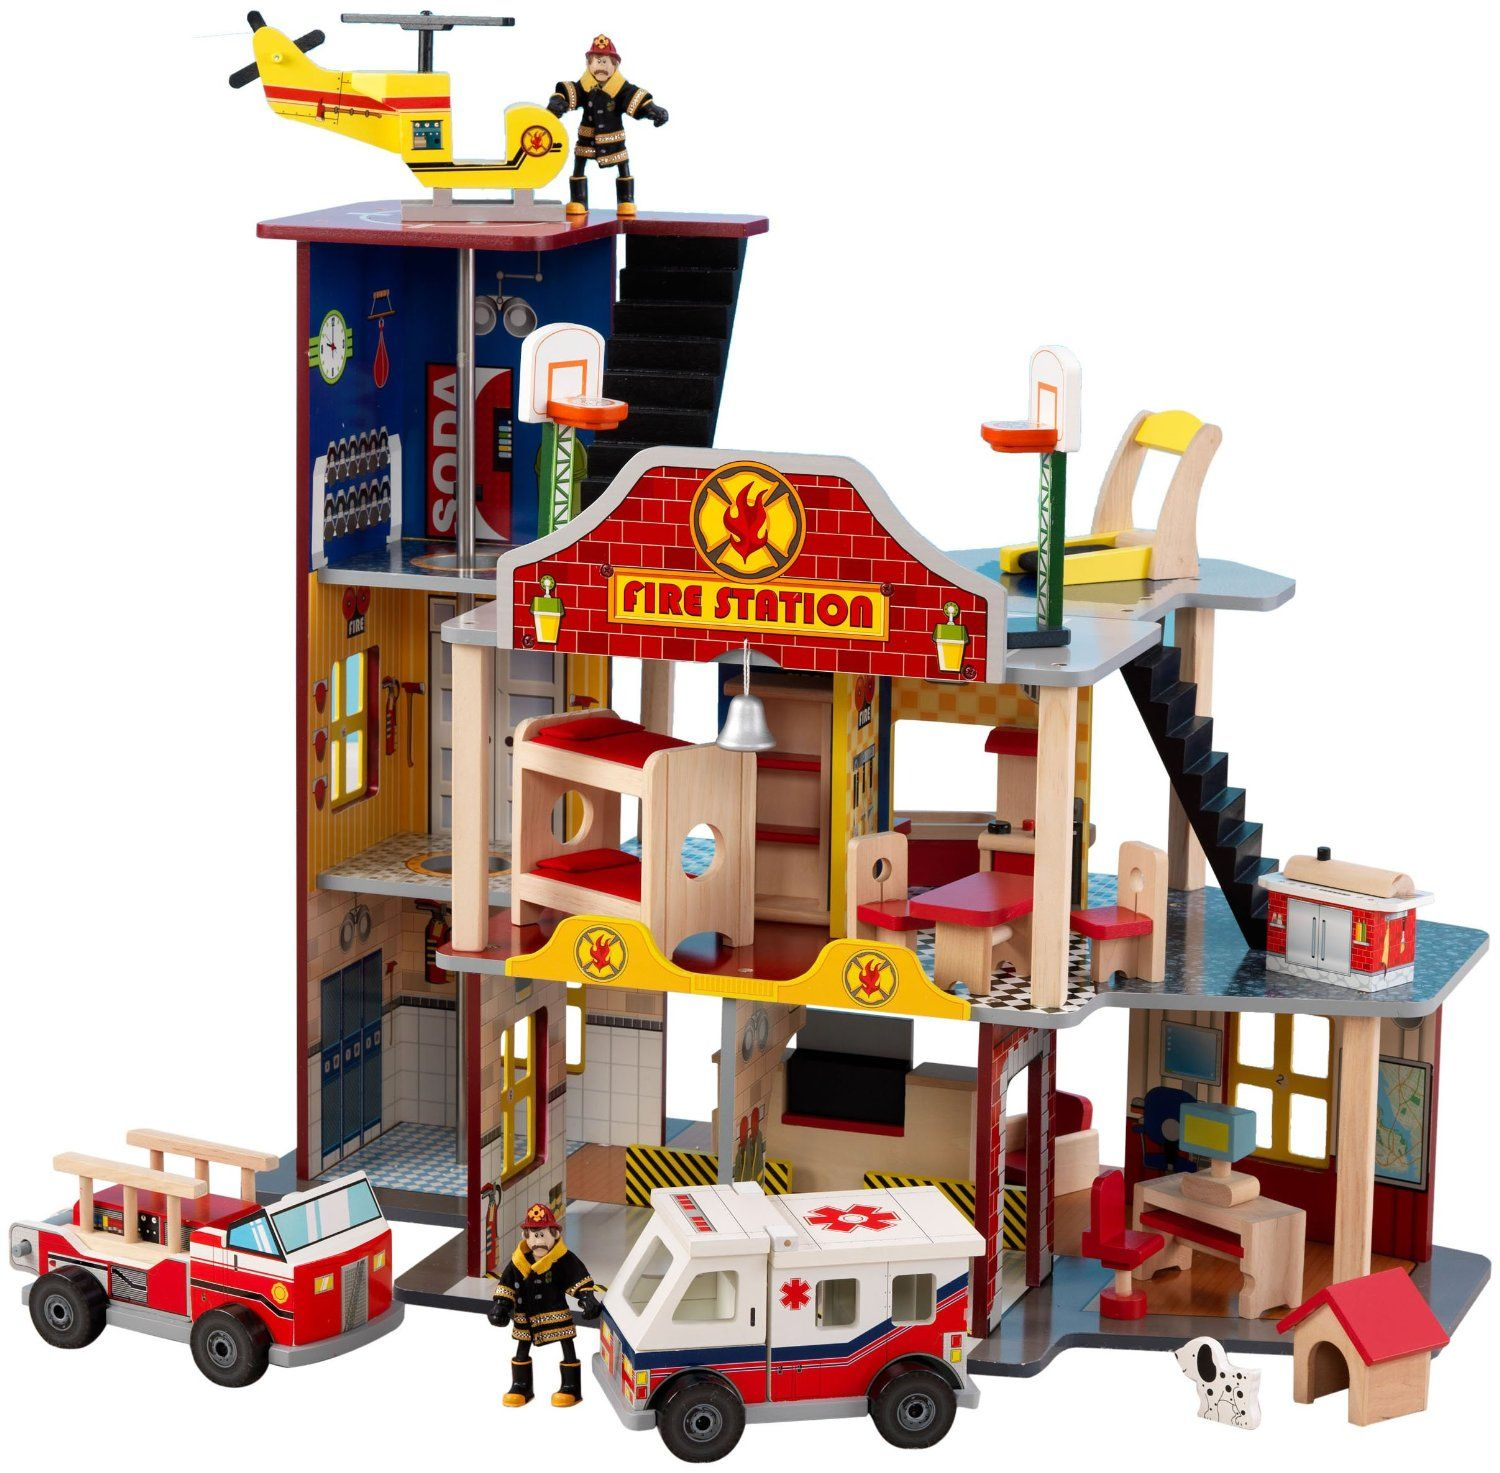 The Kidkraft Deluxe Fire Station Is Loaded With A Amazing Details